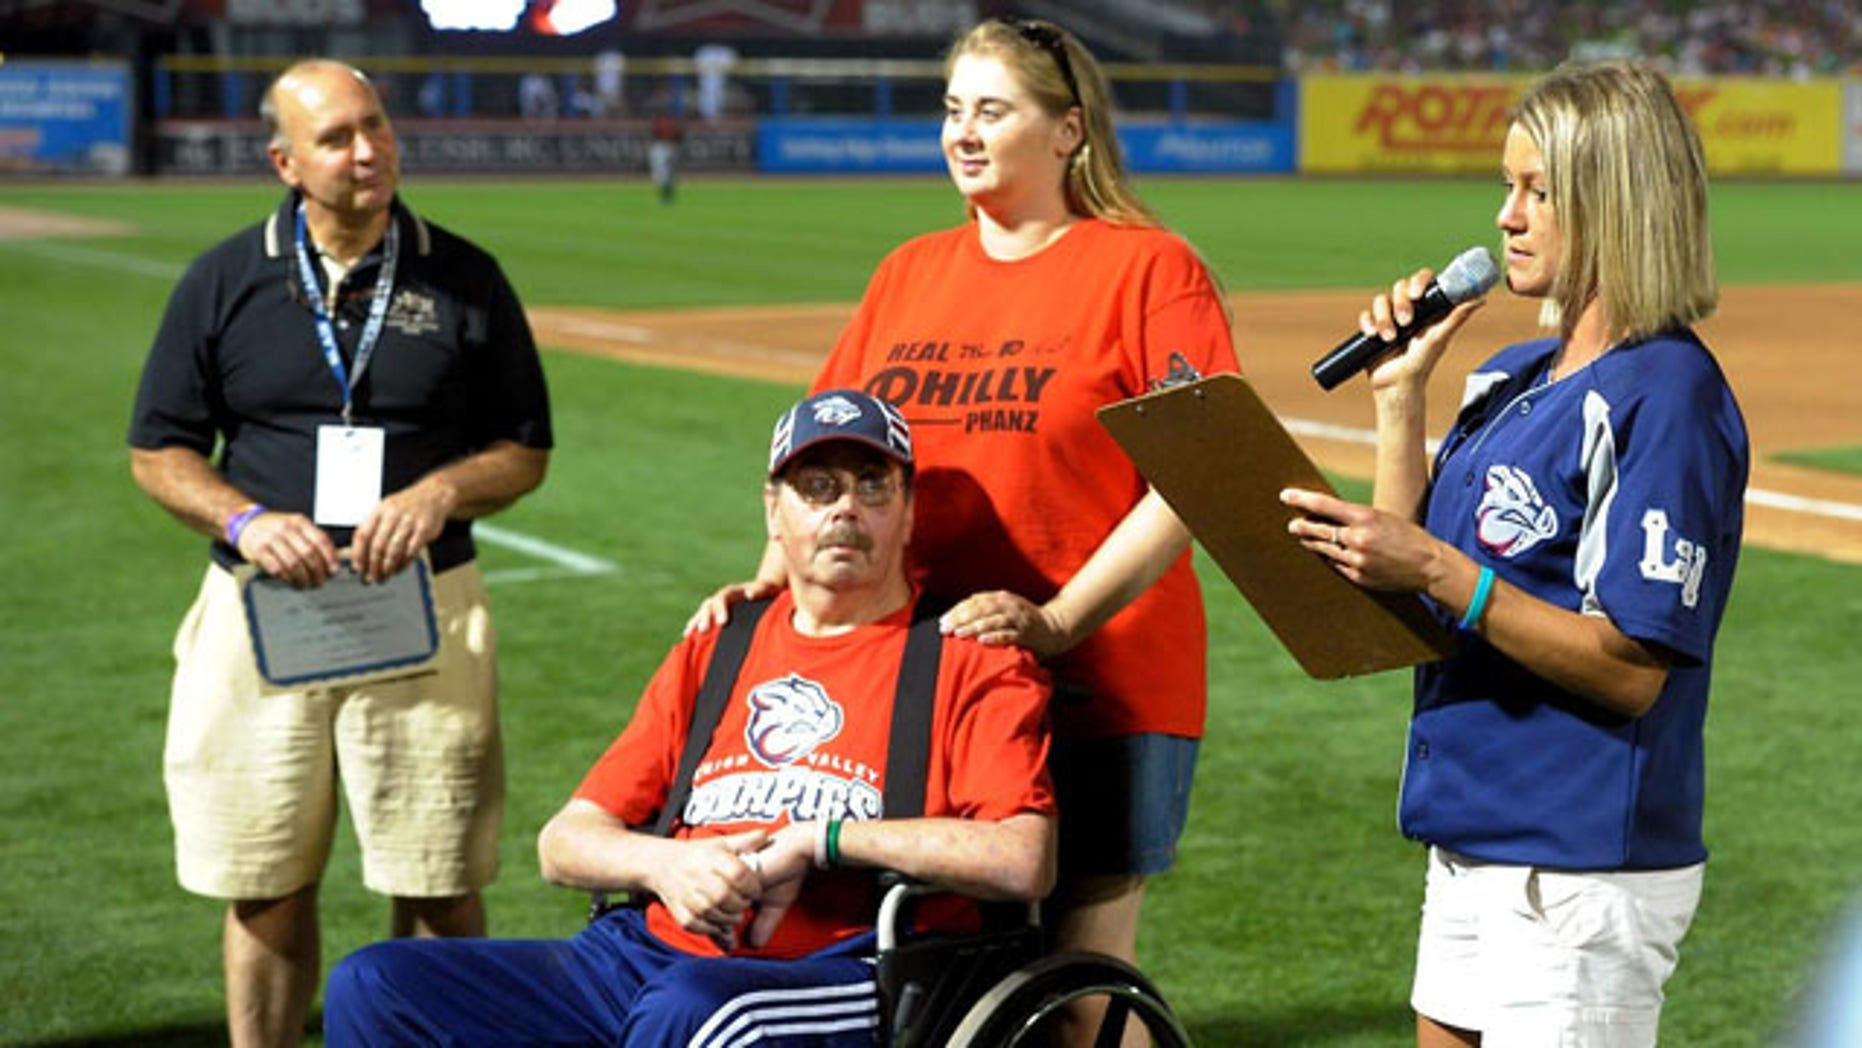 August 20, 2013: Kevin Reichel, left, of Reichel Funeral Home, watches along with Steve Paul, of Freemansburg Pa., and his daughter Robyn Paul as Lindsey Knupp, right, director of promotions and entertainment for the Lehigh Valley Iron Pigs minor league baseball team, reads the winning essay written by Steve Paul during the middile of the sixth inning at Coca-Cola Park, in Allentown, Pa. (AP Photo)